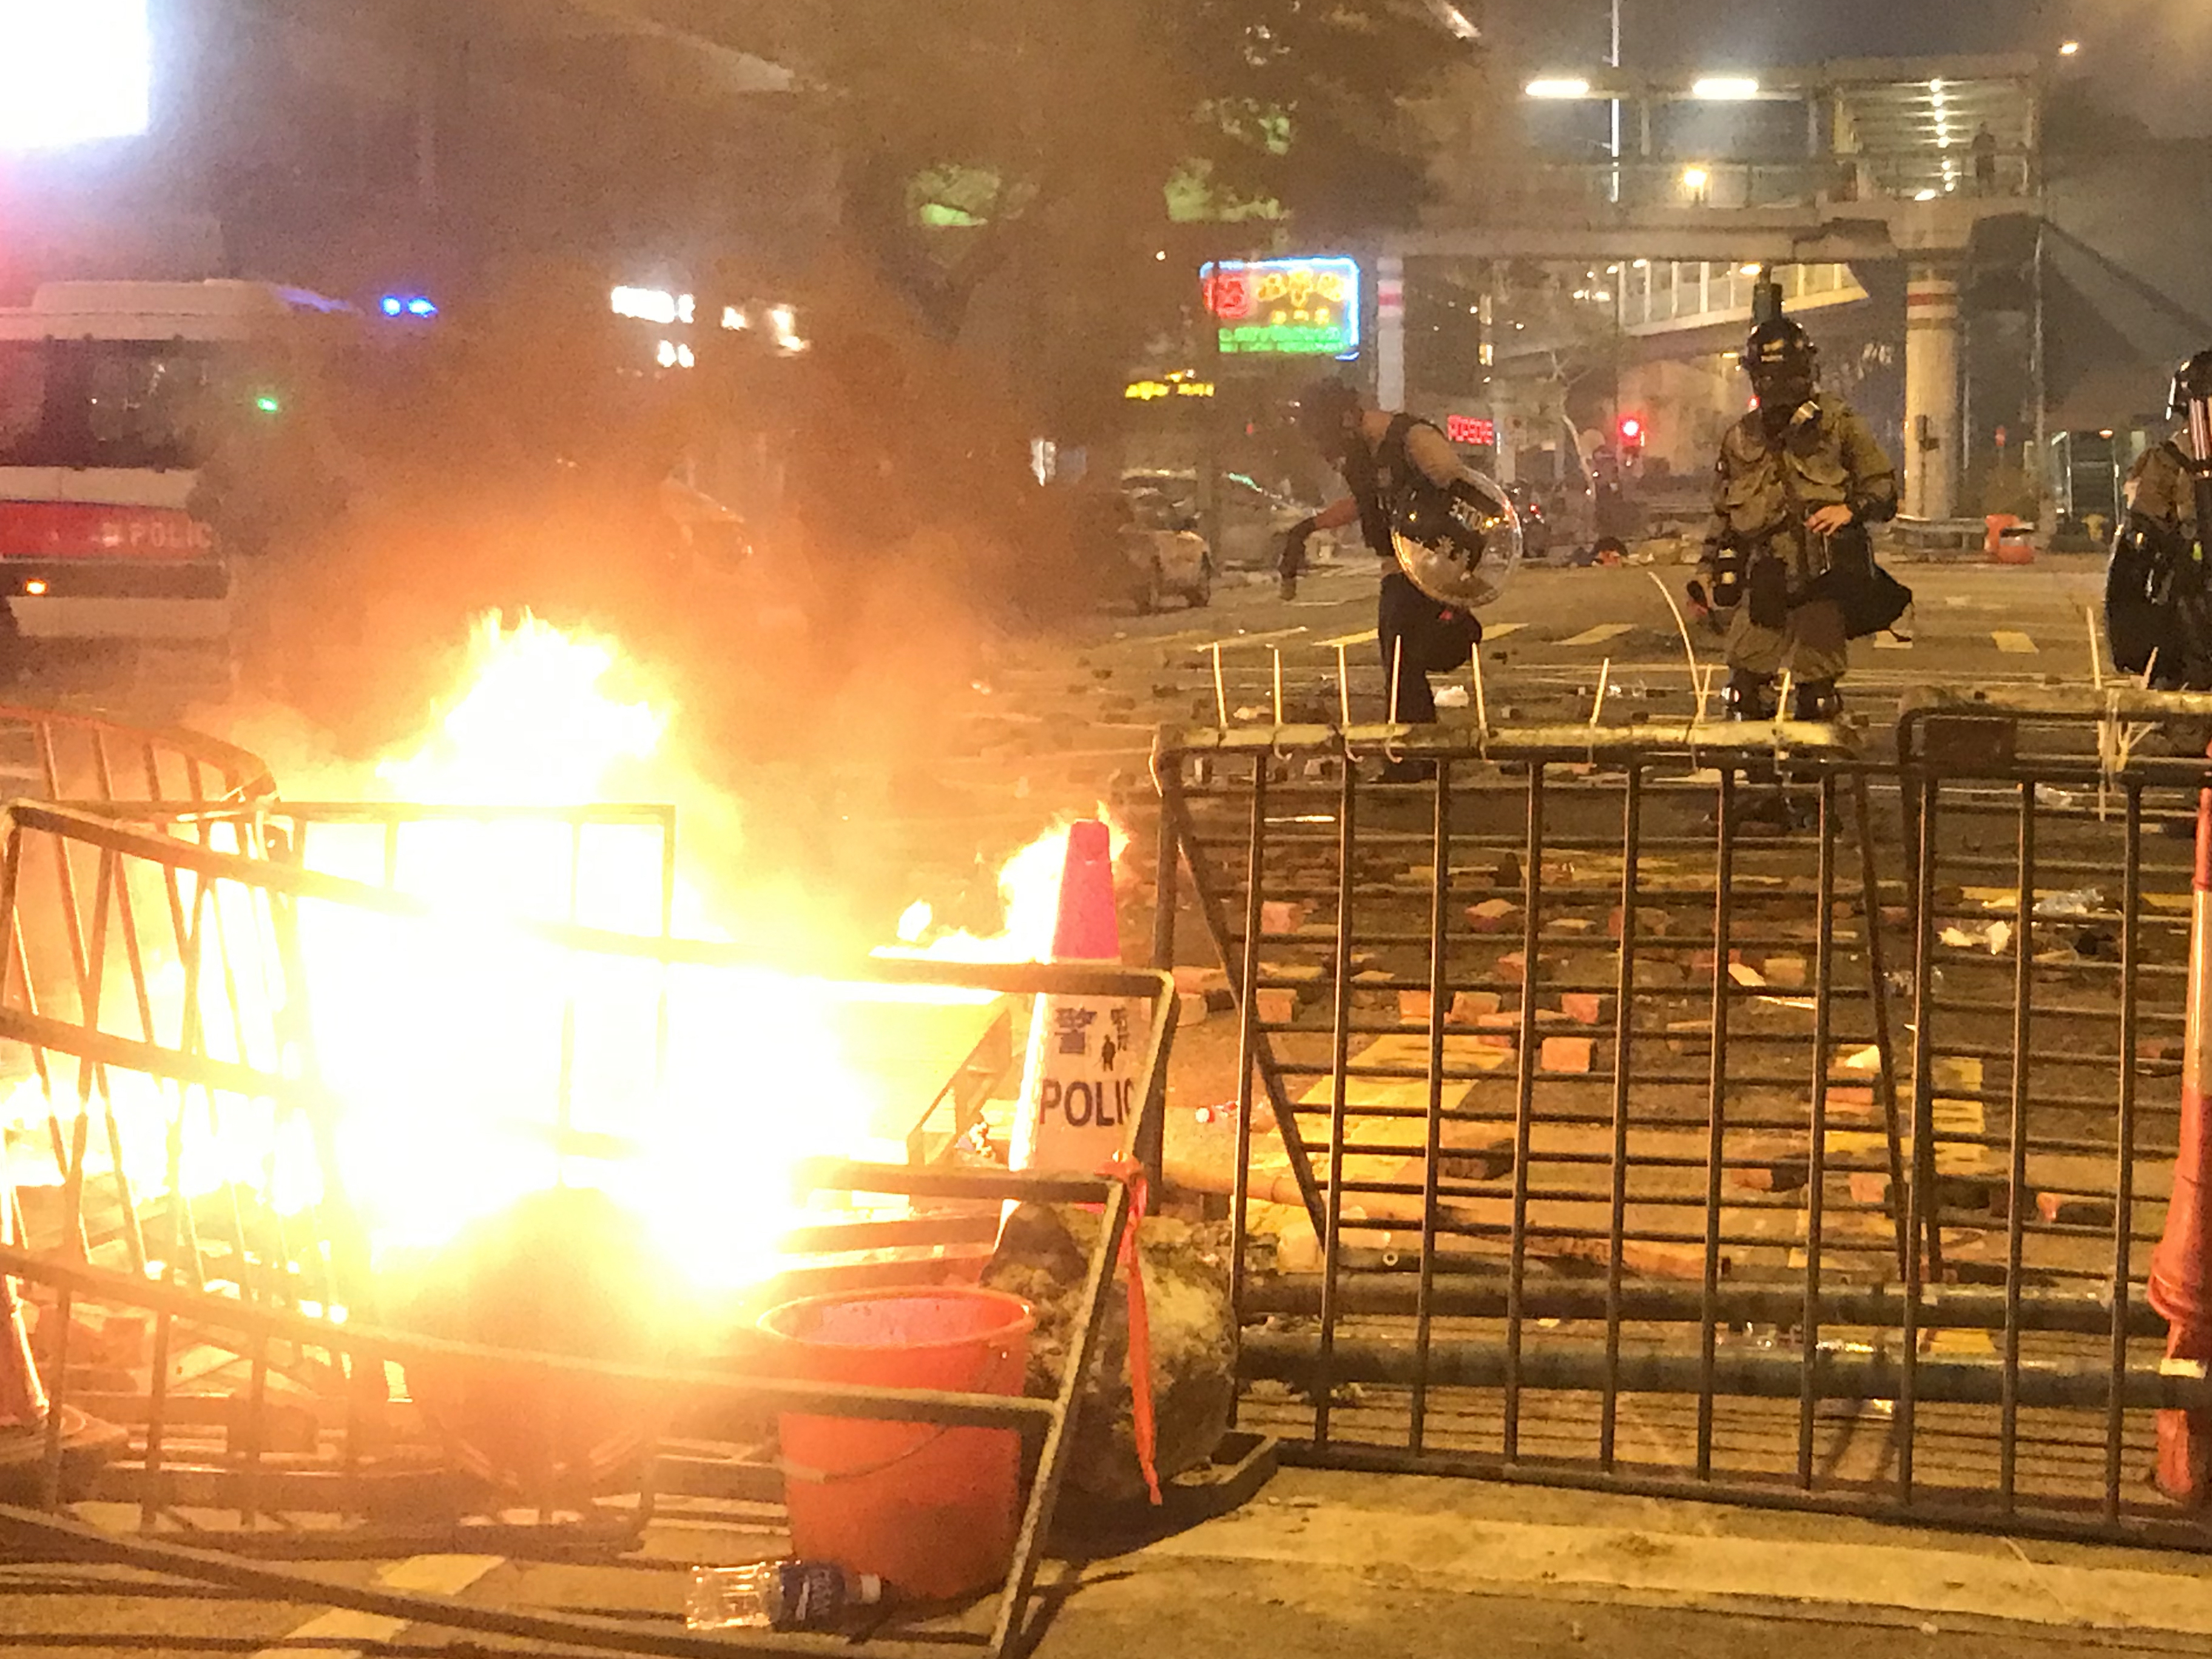 Hong Kong Protests: Chaotic Scenes Unfold In Streets Ahead